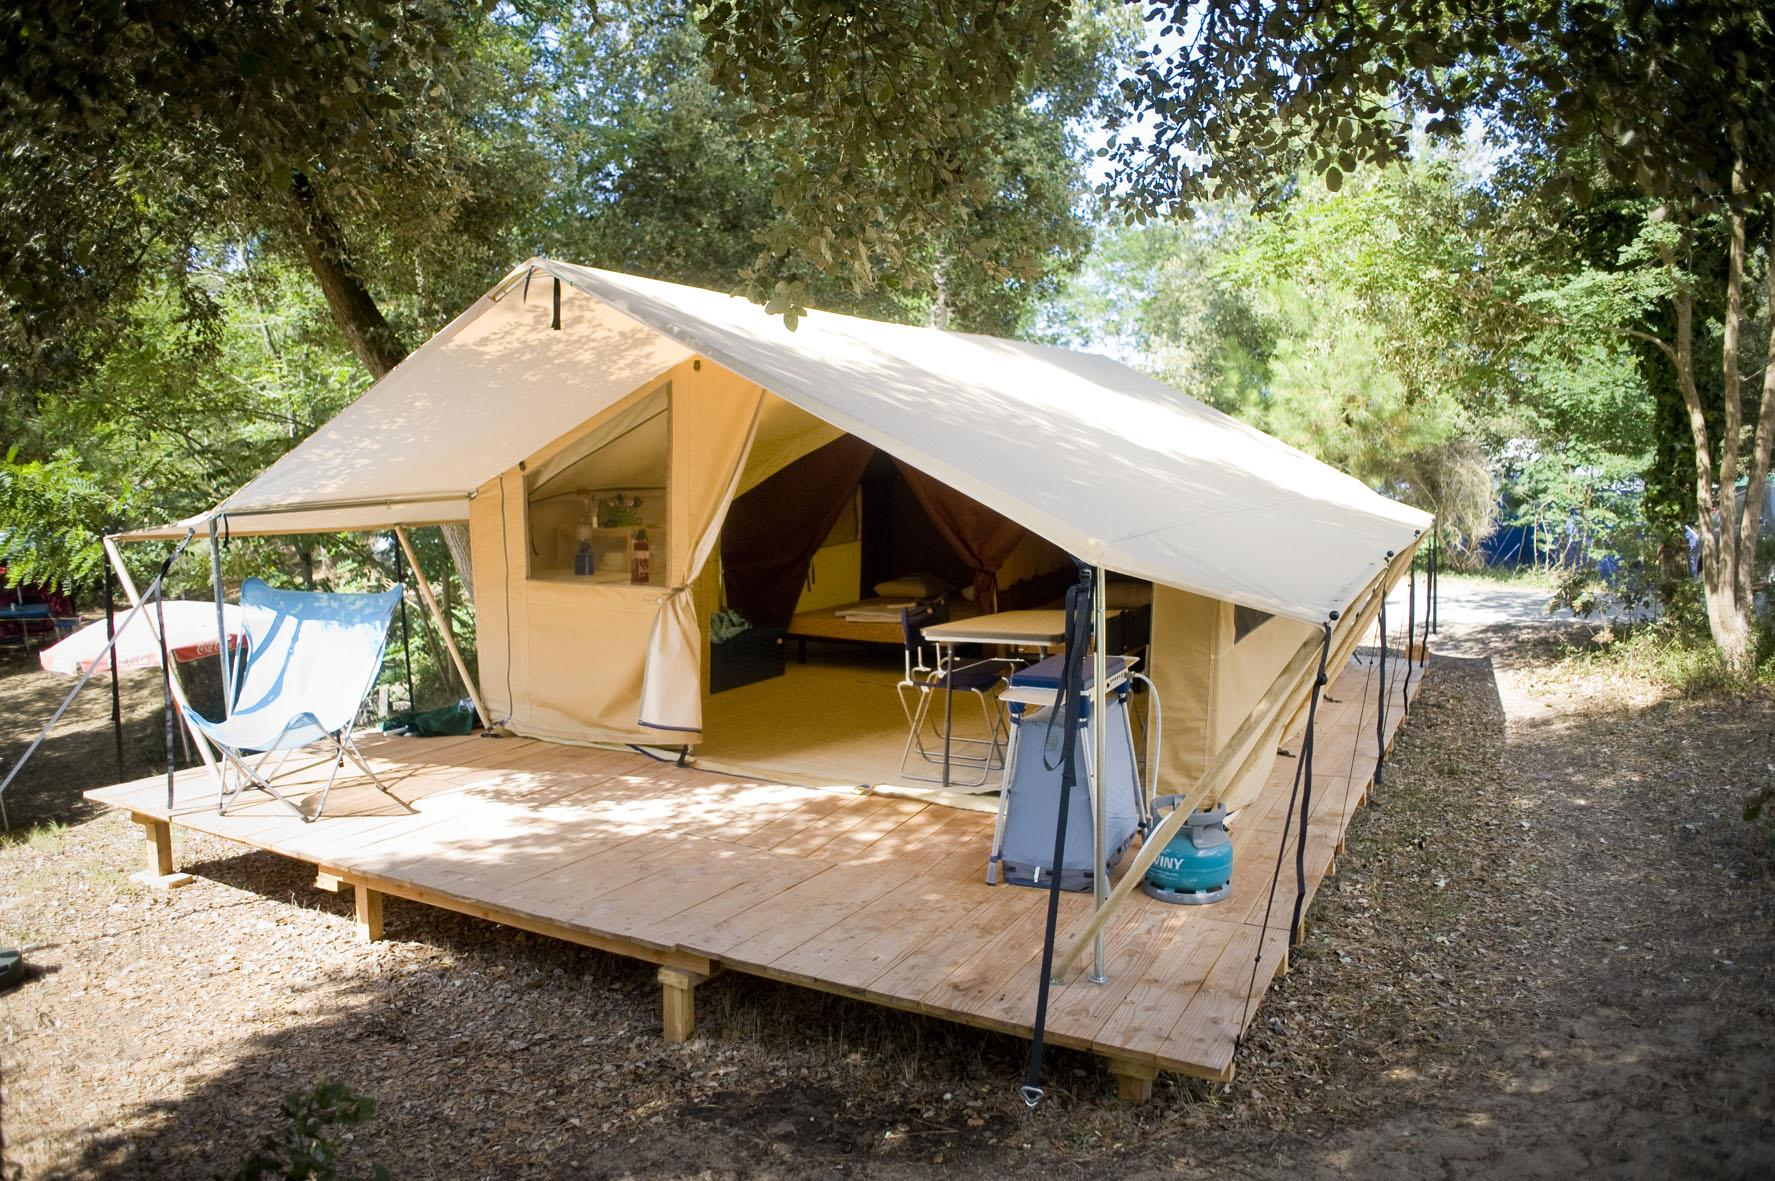 Rental - Classic IV Wood u0026 Canvas tent - Huttopia Lac de Carcans & Huttopia Lac de Carcans u2013 CARCANS | Book your holidays